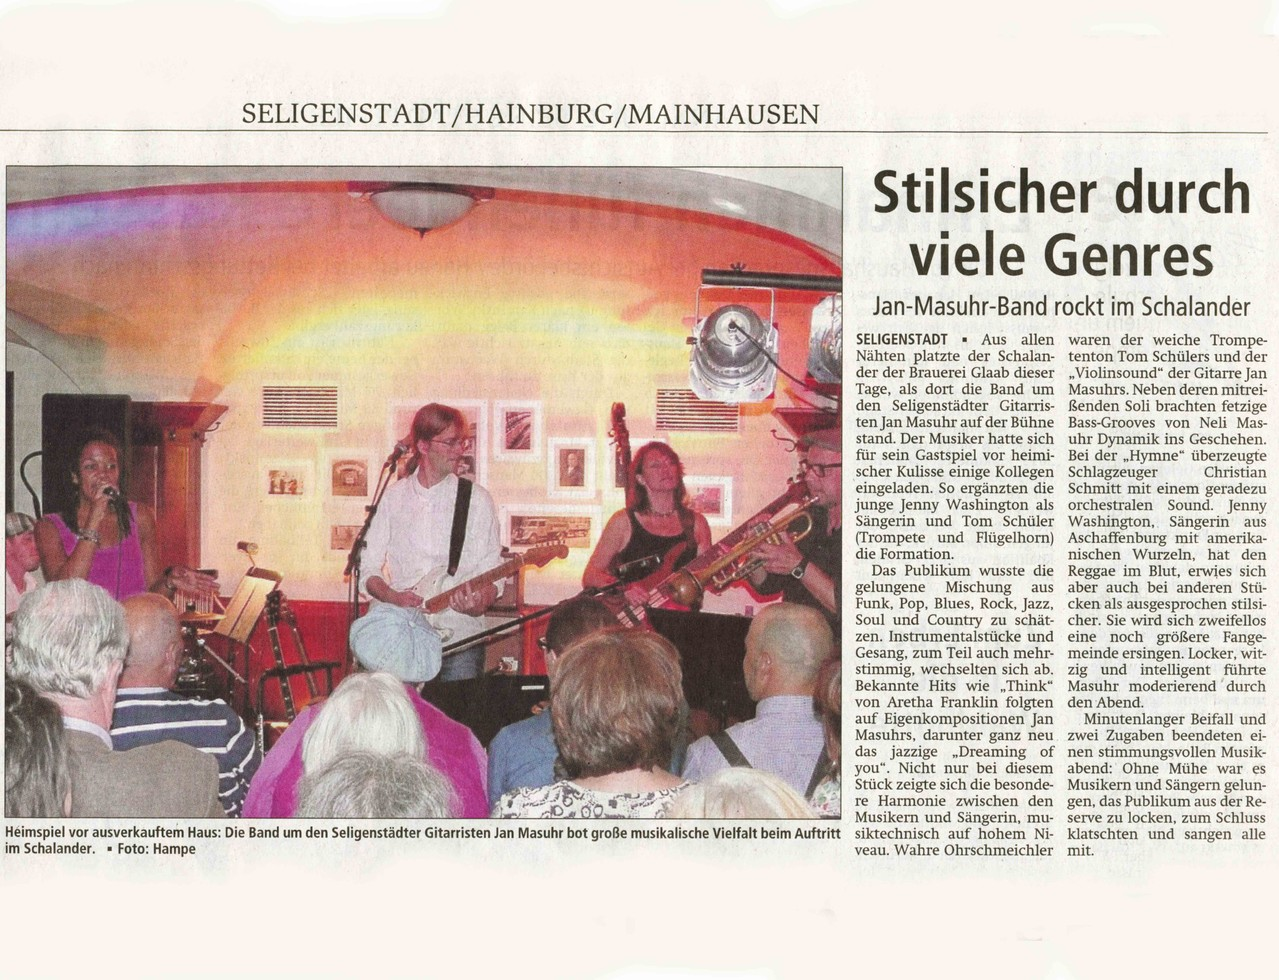 Offenbach Post, 24. September 2012